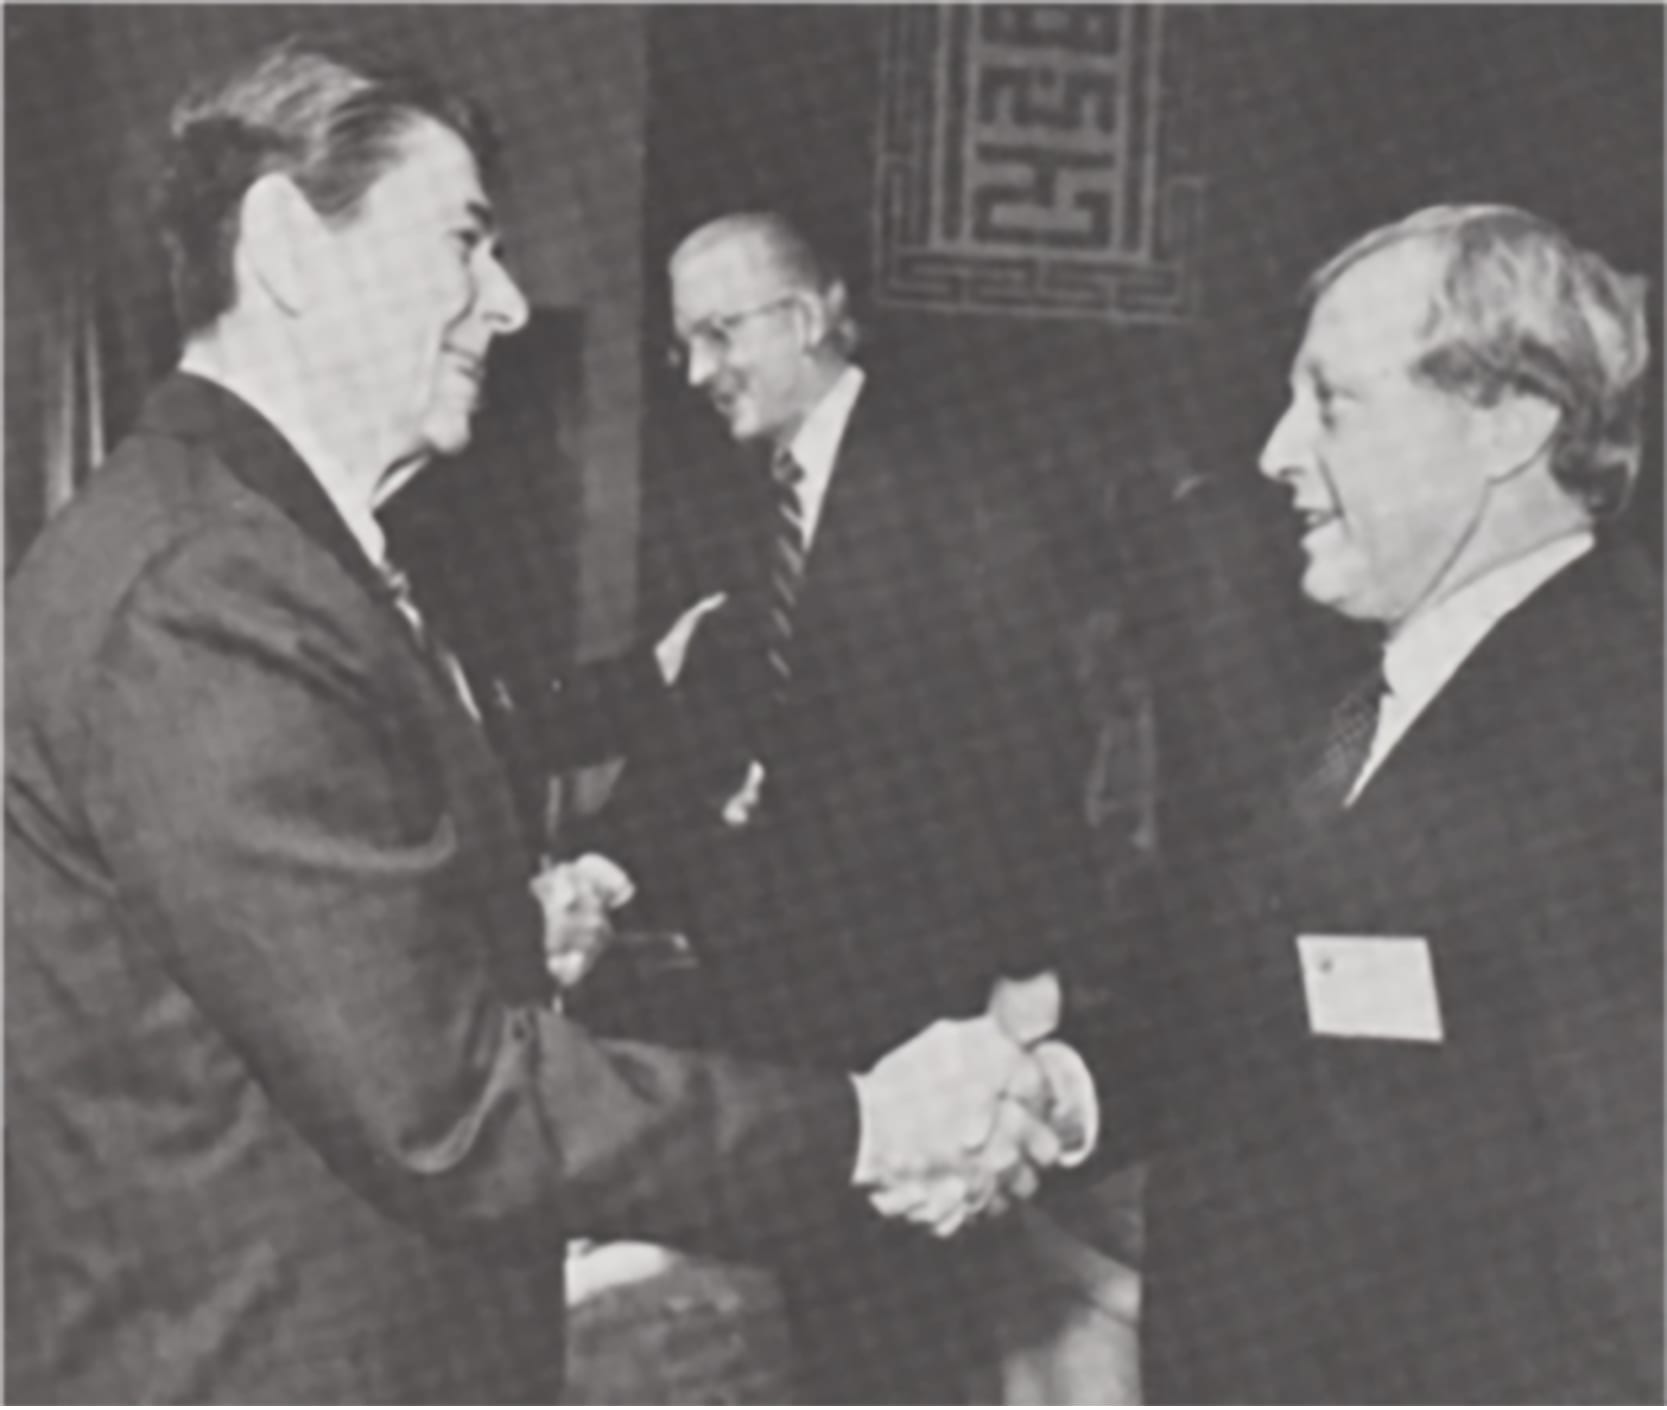 Connell executive Dave Seldon, right, with U.S. President Ronald Reagan.